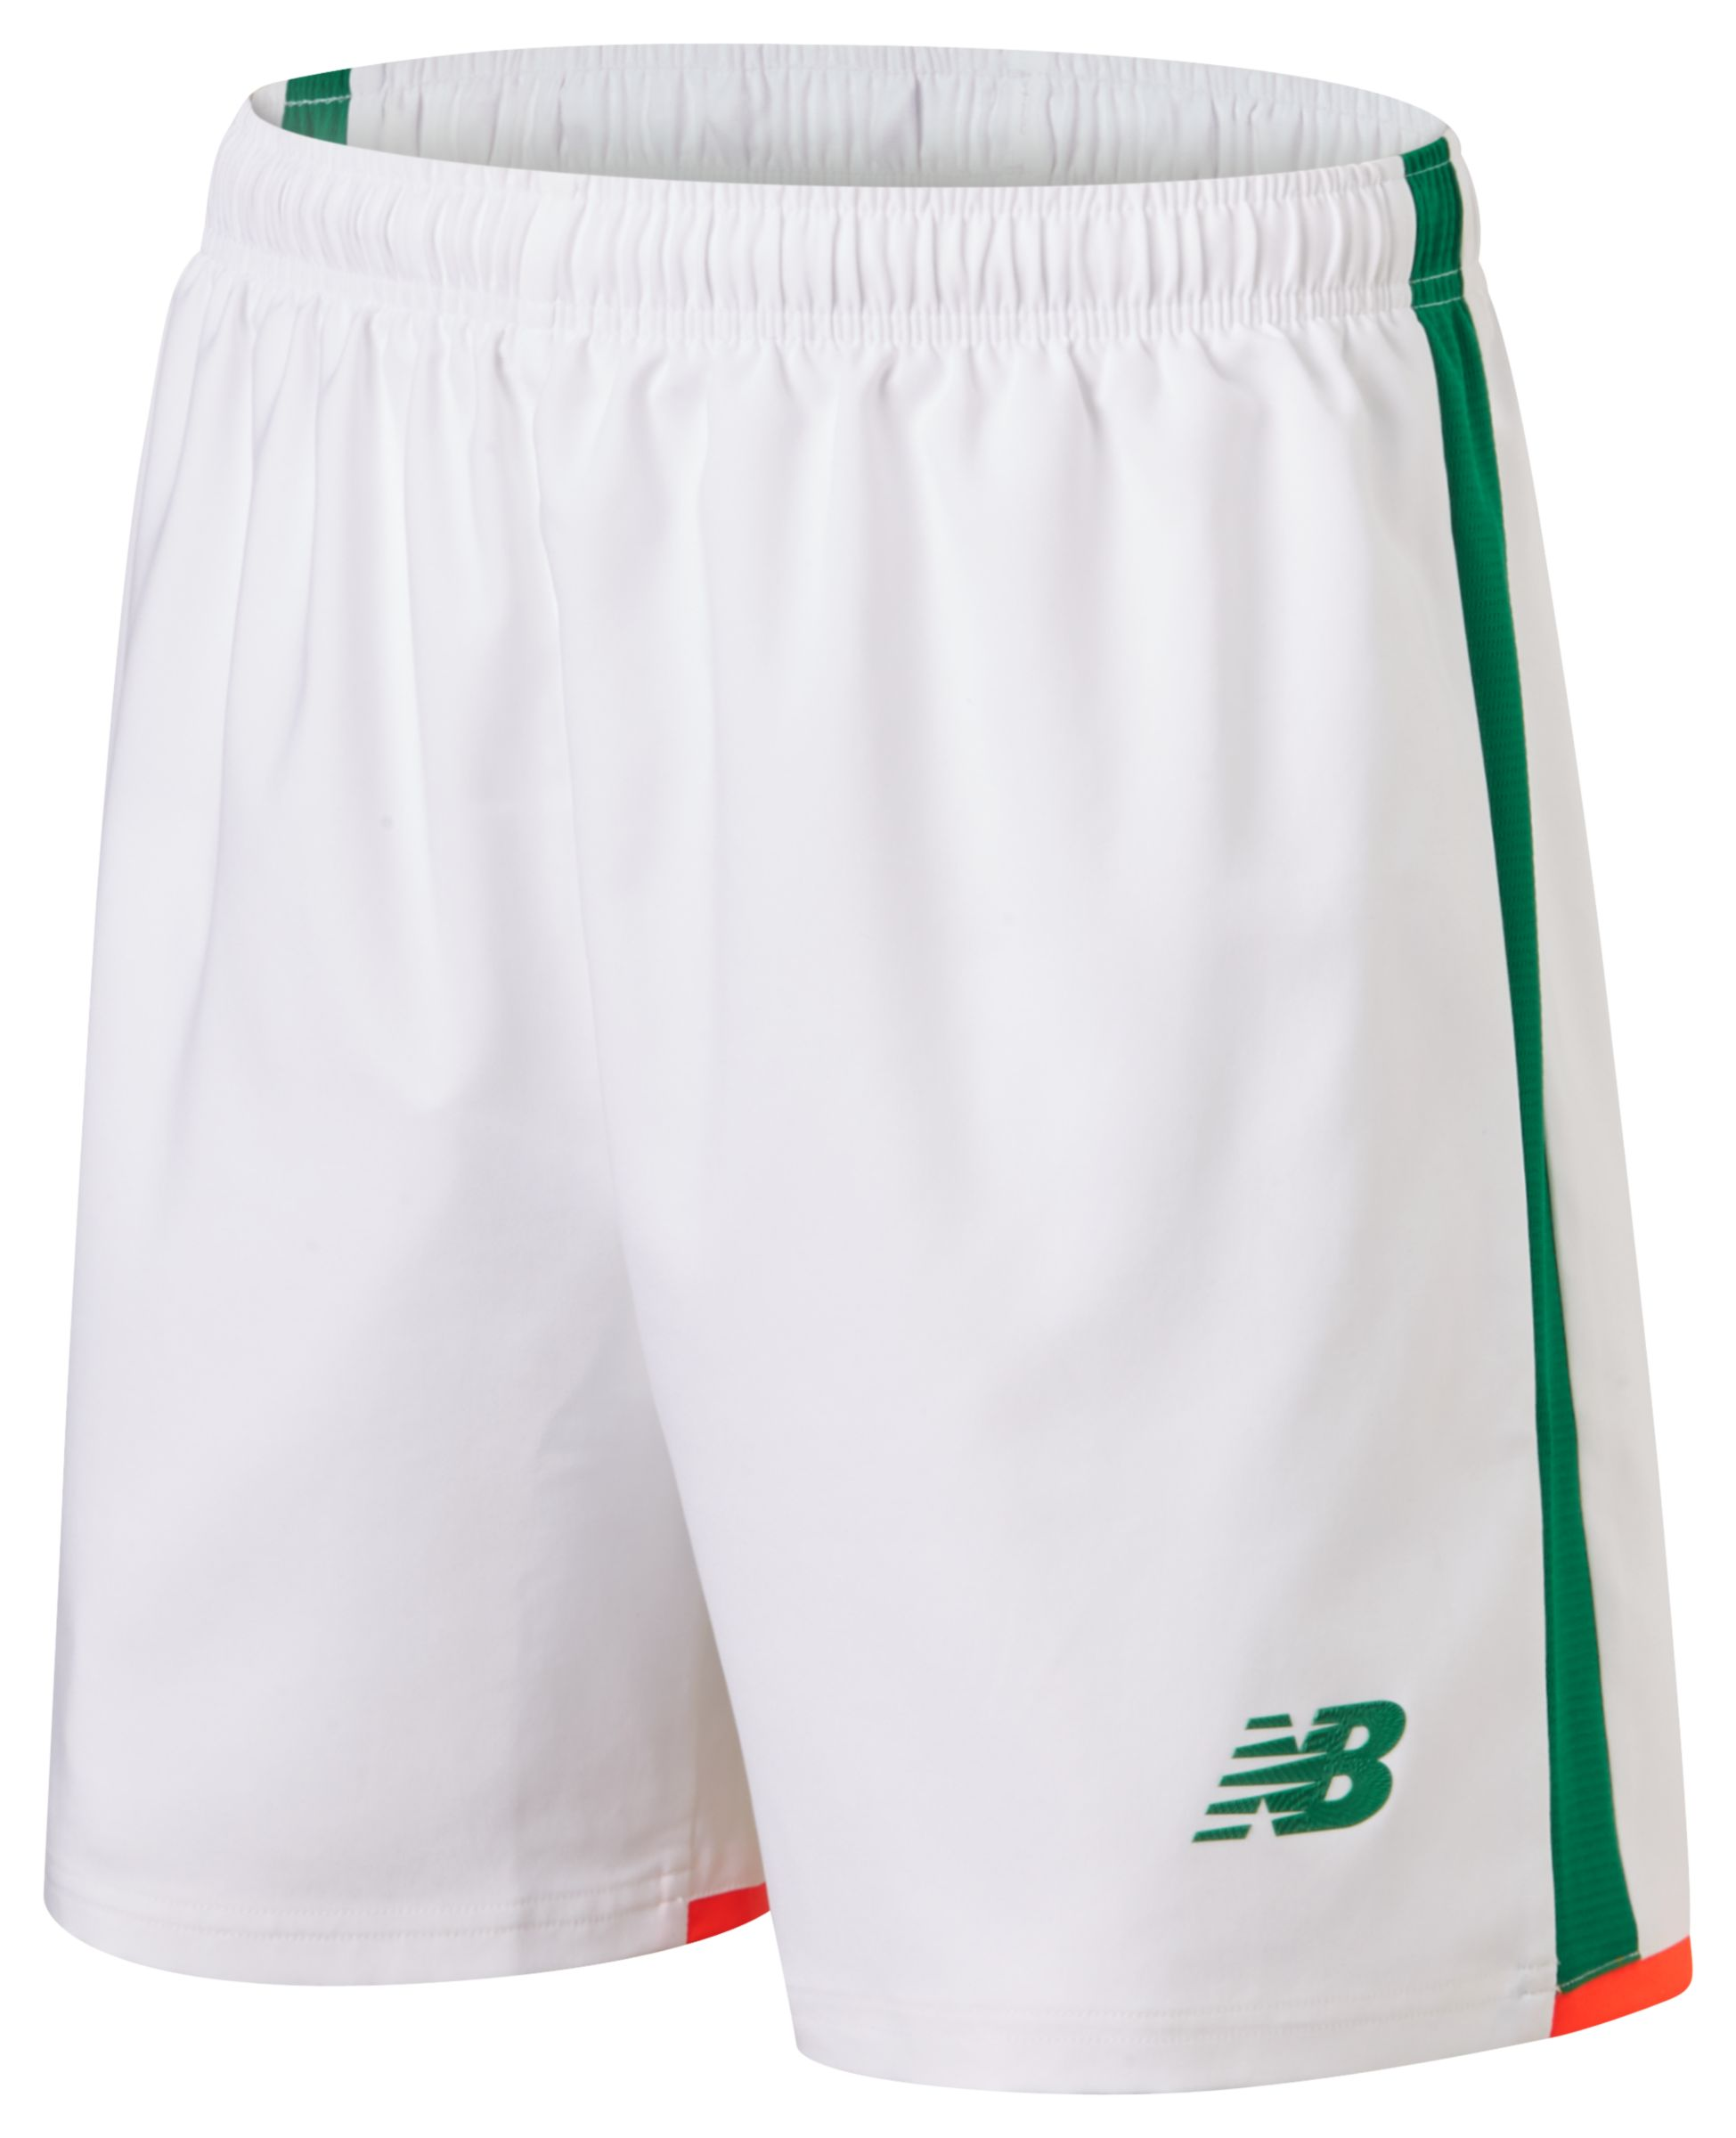 NB FAI Home Short - Jonk, White